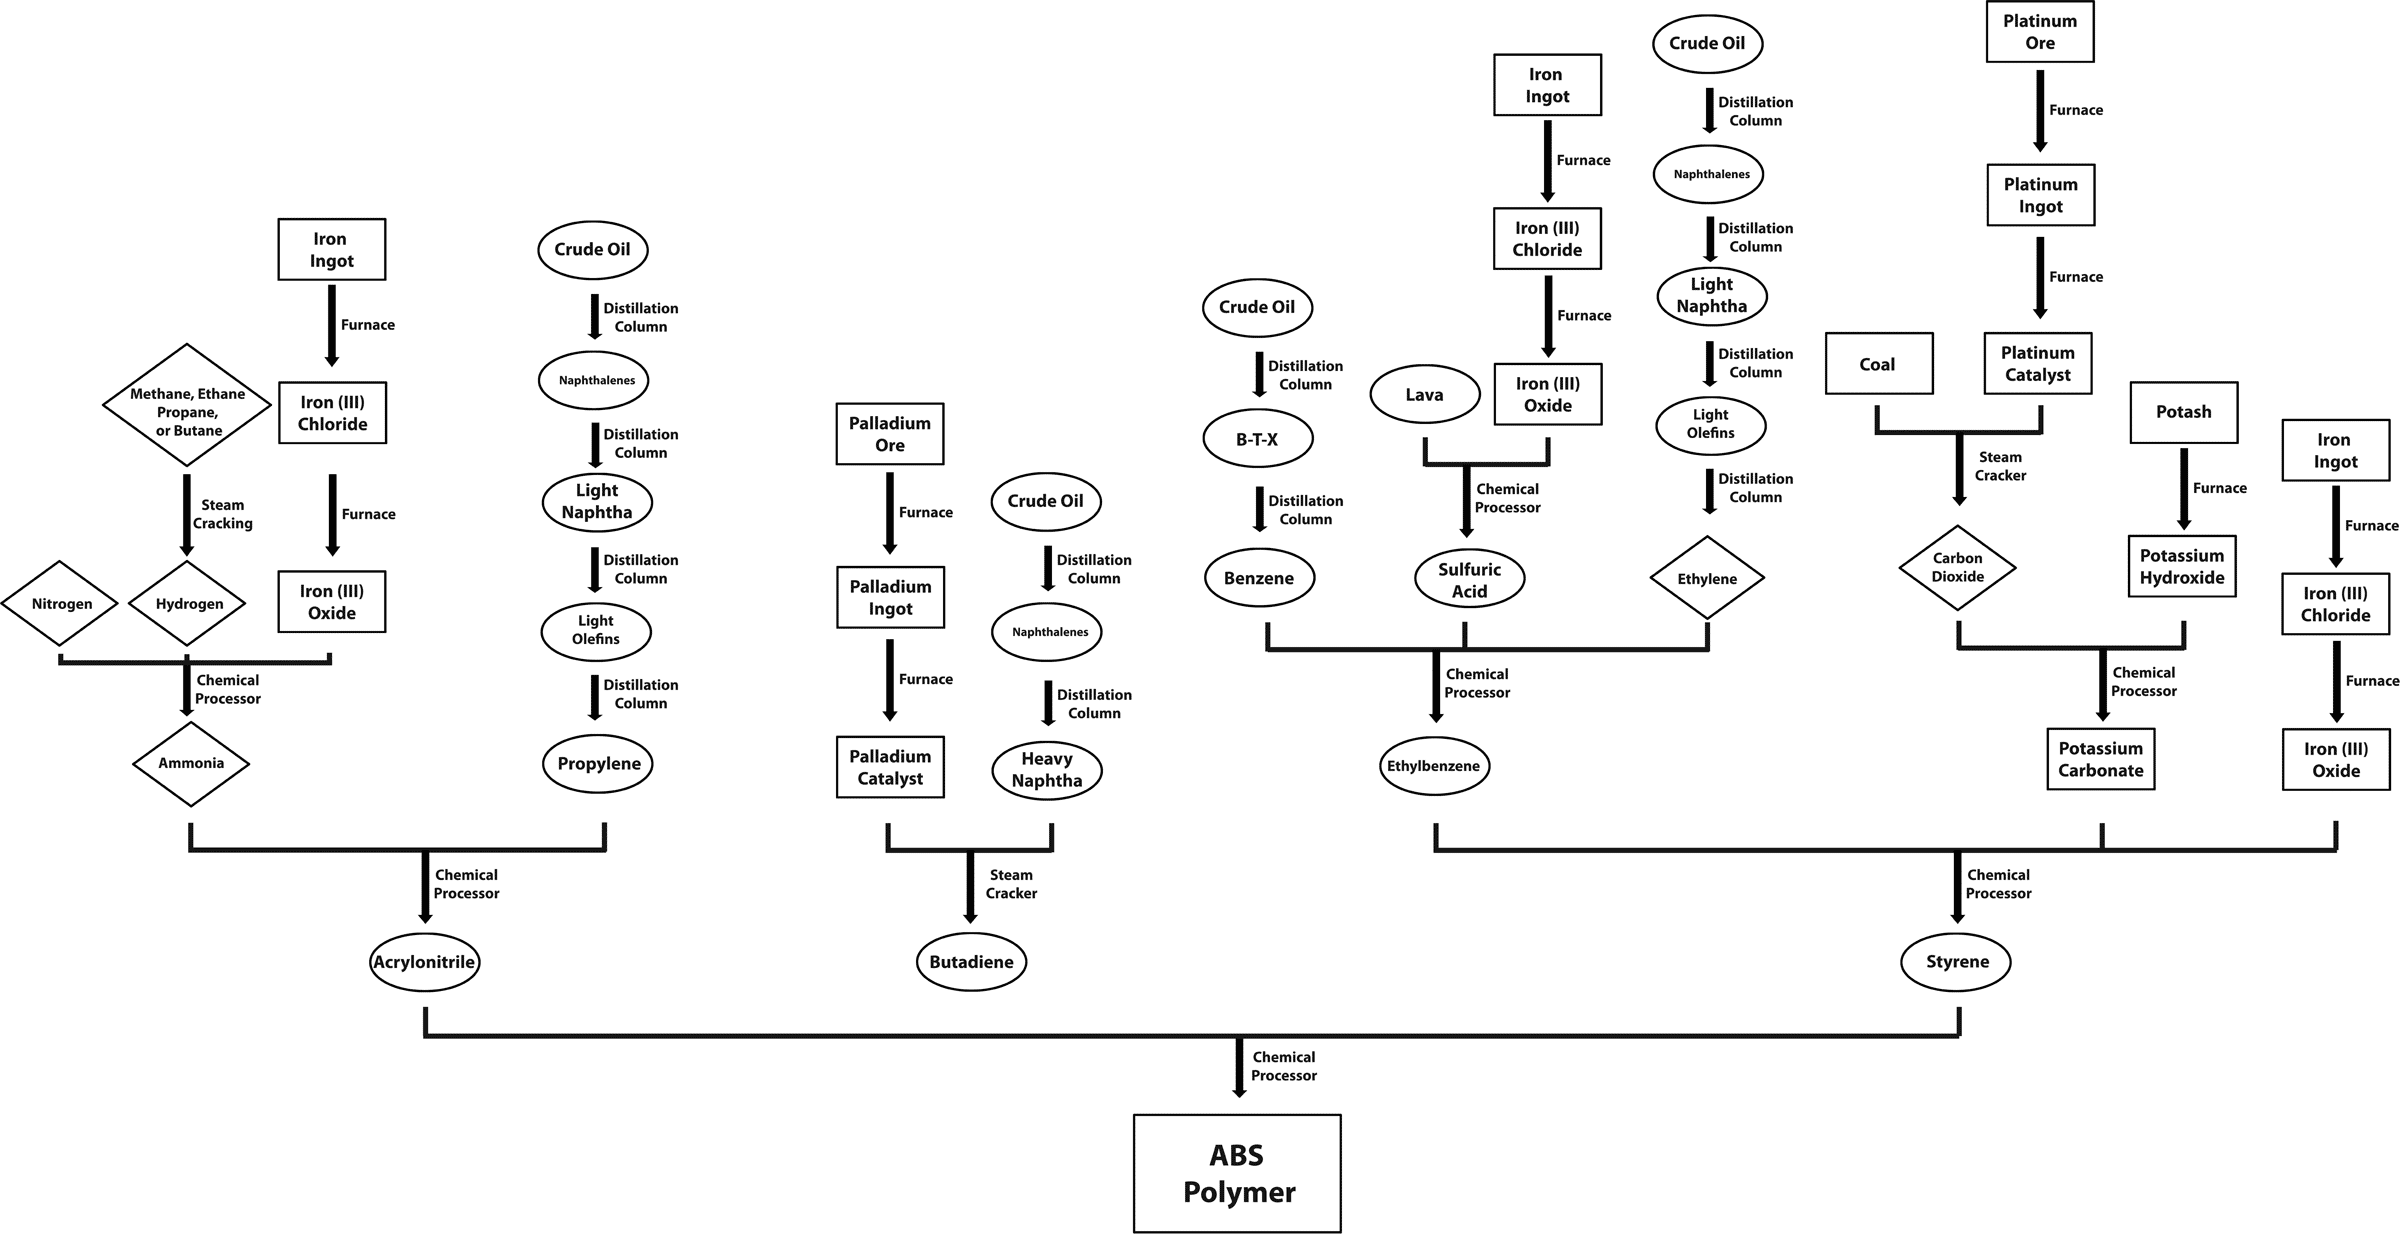 Tech Tree ABS.png